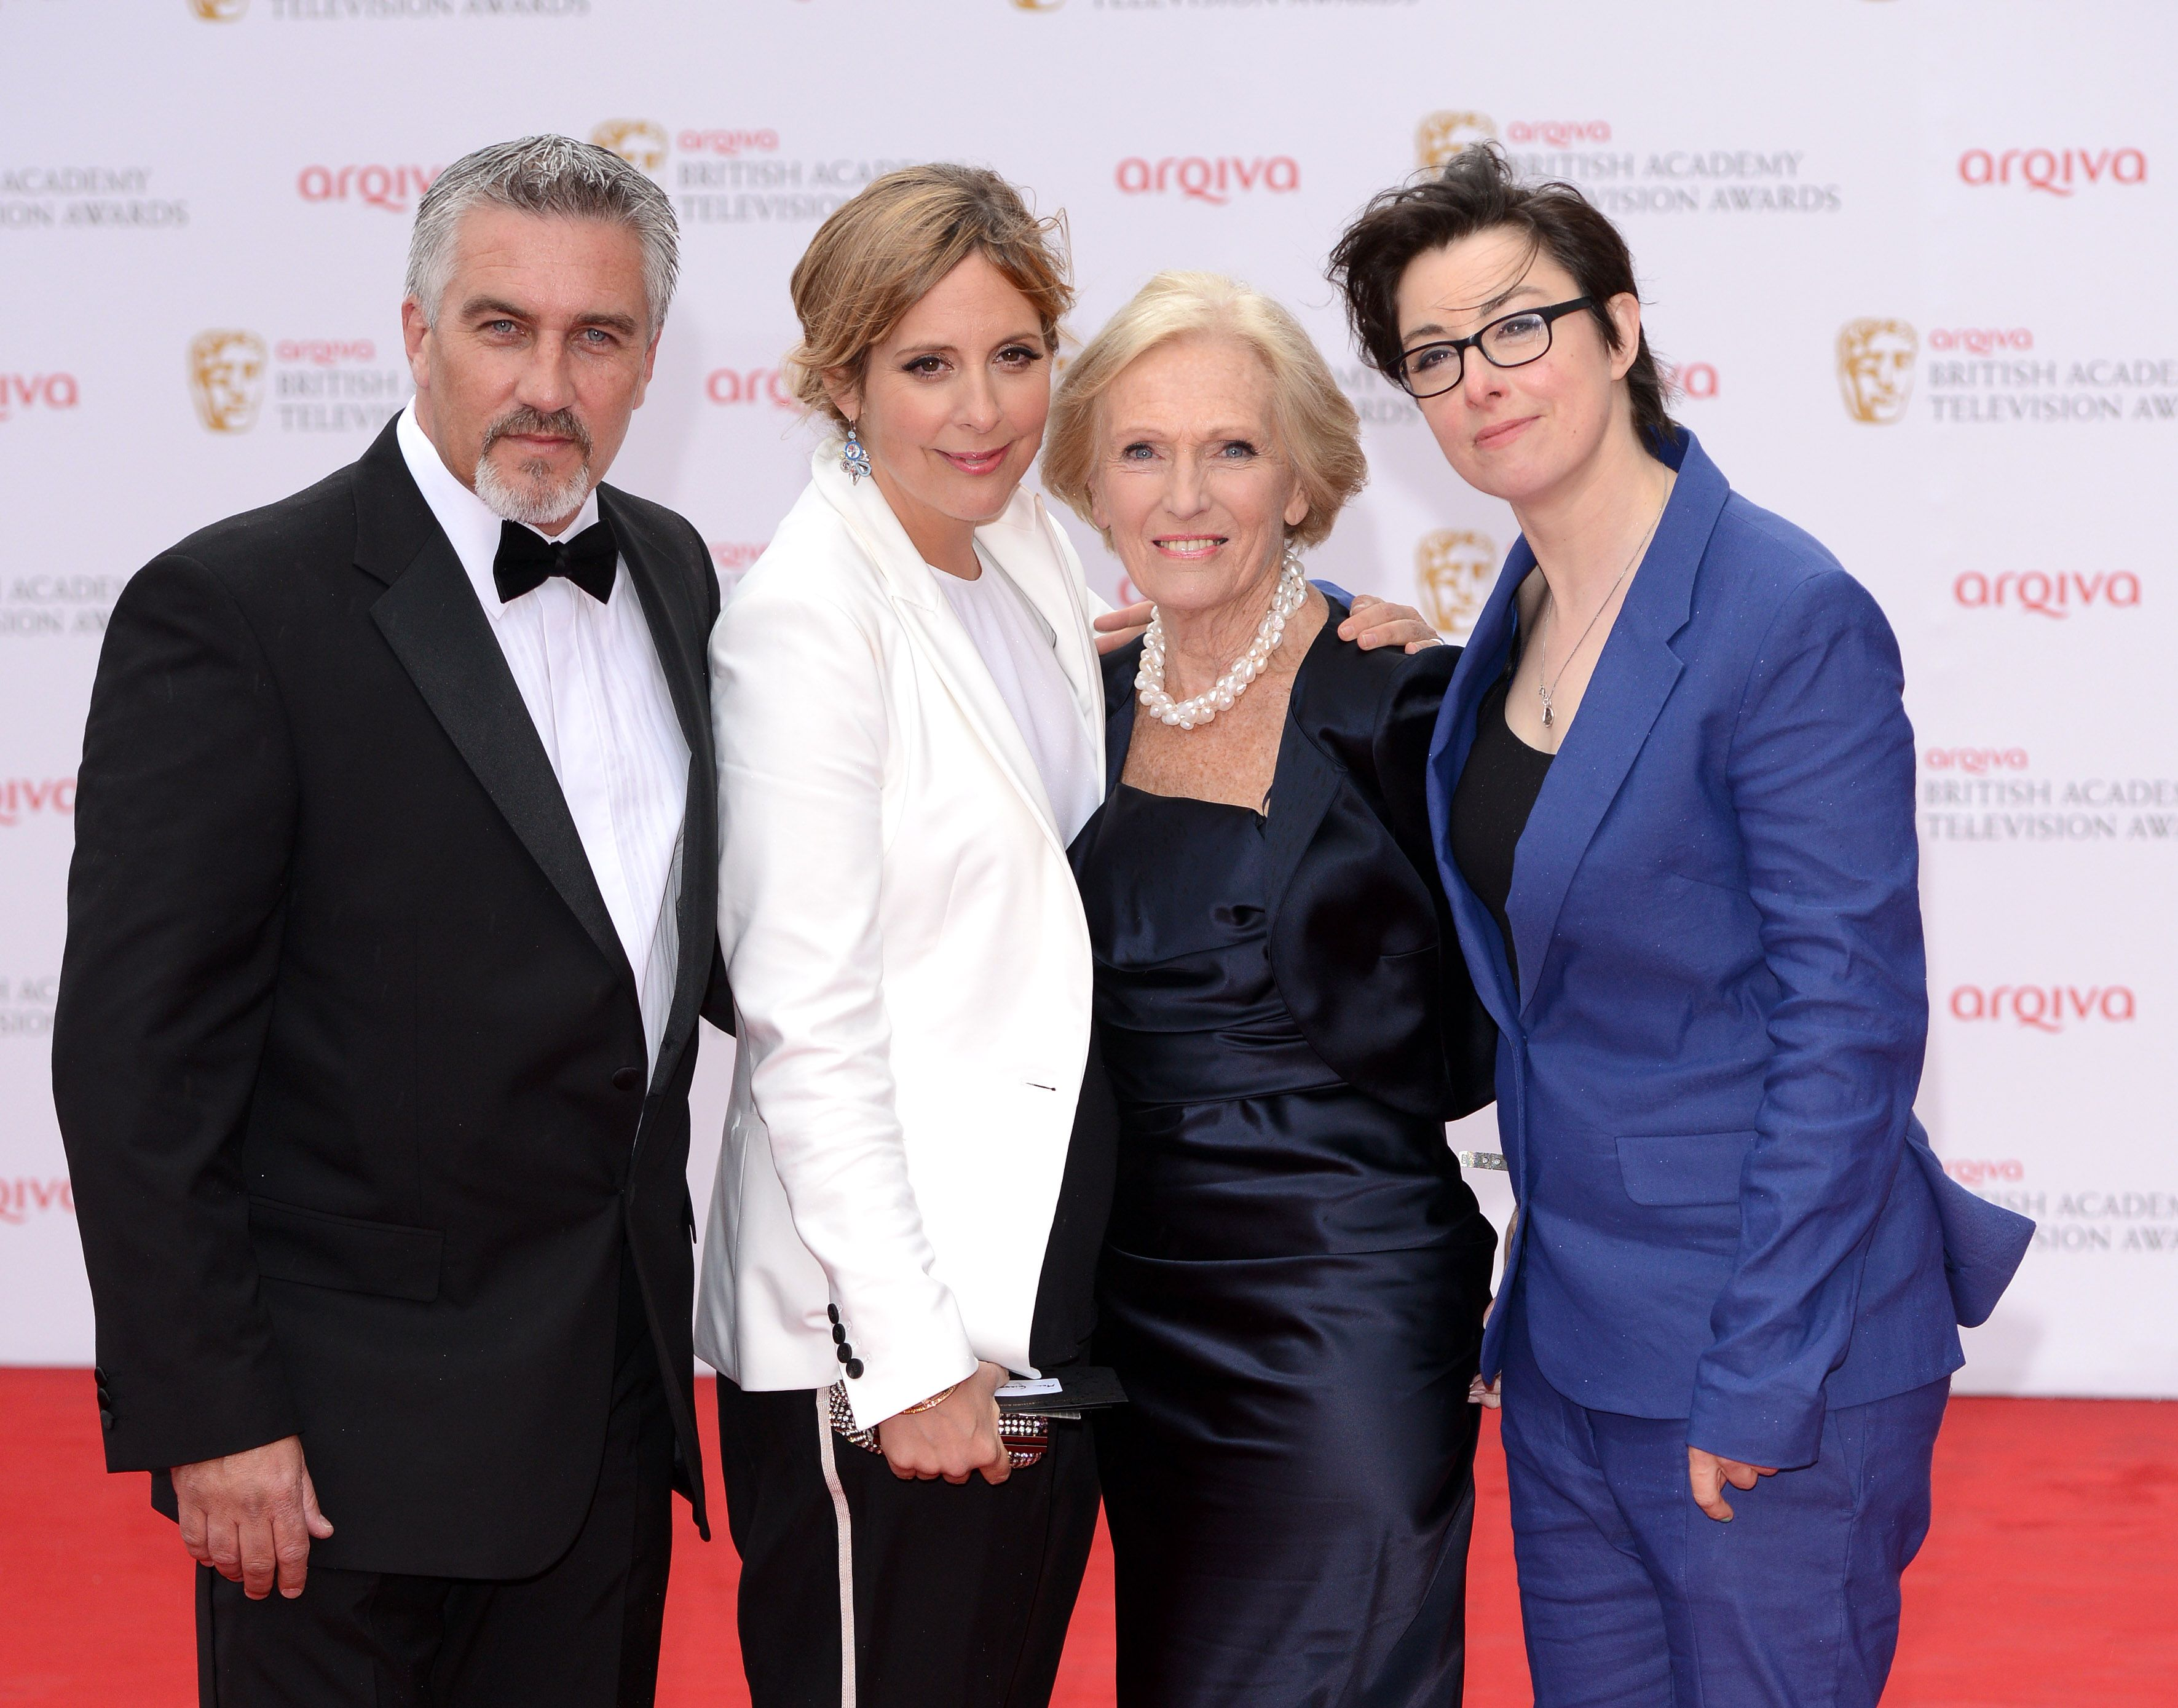 Co Host Of The Great British Bake Off Christmas 2021 Former Great British Baking Show Co Host Sue Perkins Spoke About Paul Hollywood